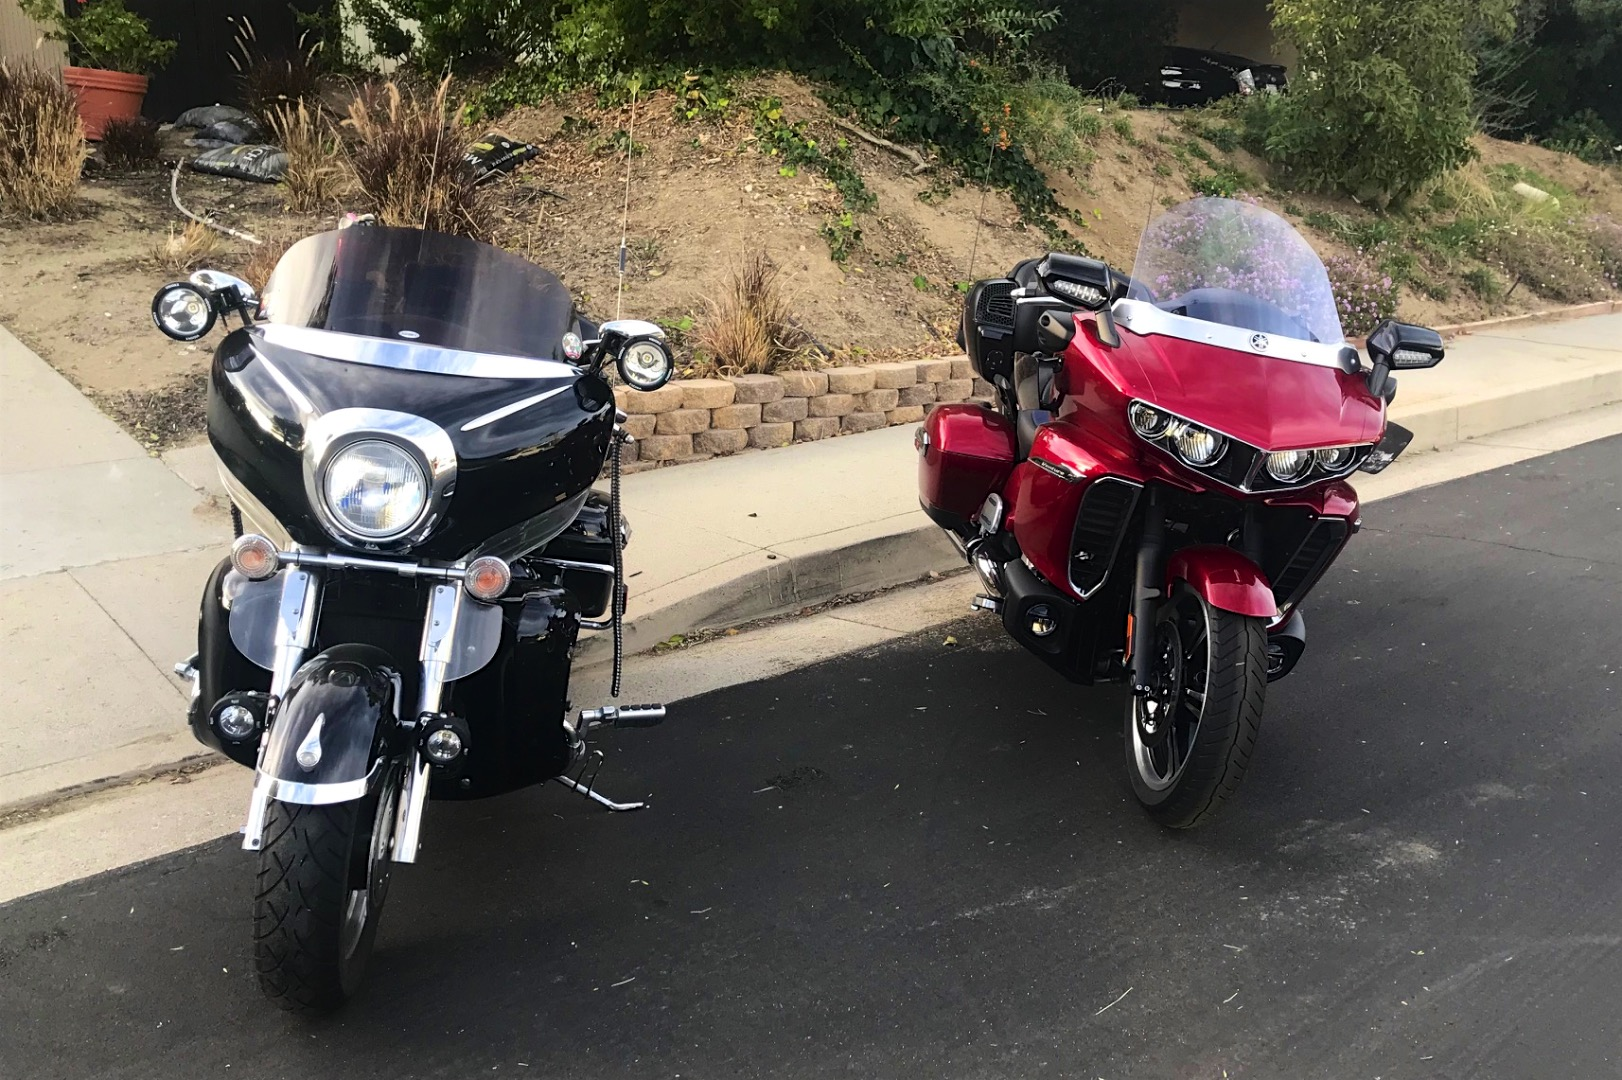 Iron Butt Comparison: 2018 Yamaha Star Venture vs Personalized 2007 Royal Star Venture